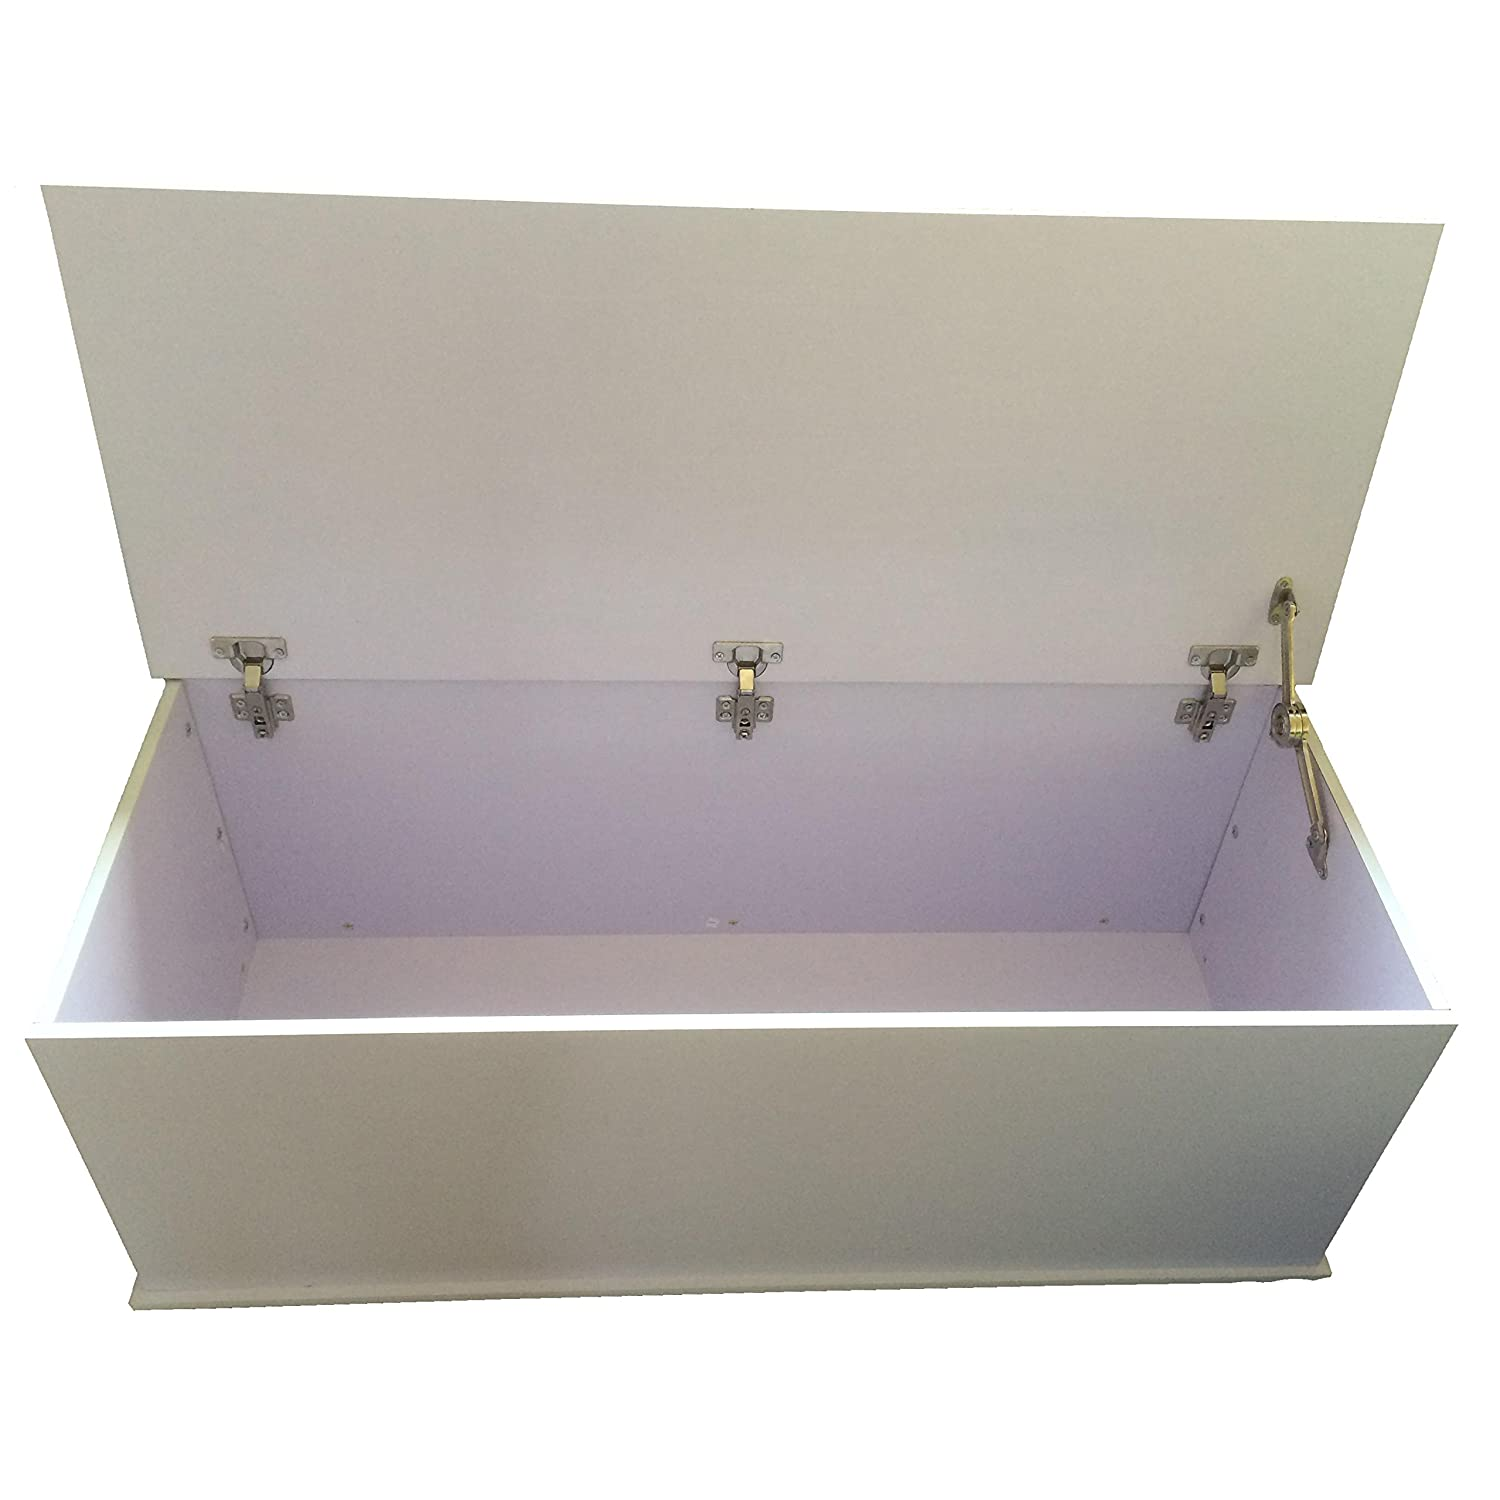 Redstone White Ottoman Storage Chest   Hinge Can Be Locked With Pin To  Prevent Lid From Dropping When Open: Amazon.co.uk: Kitchen U0026 Home